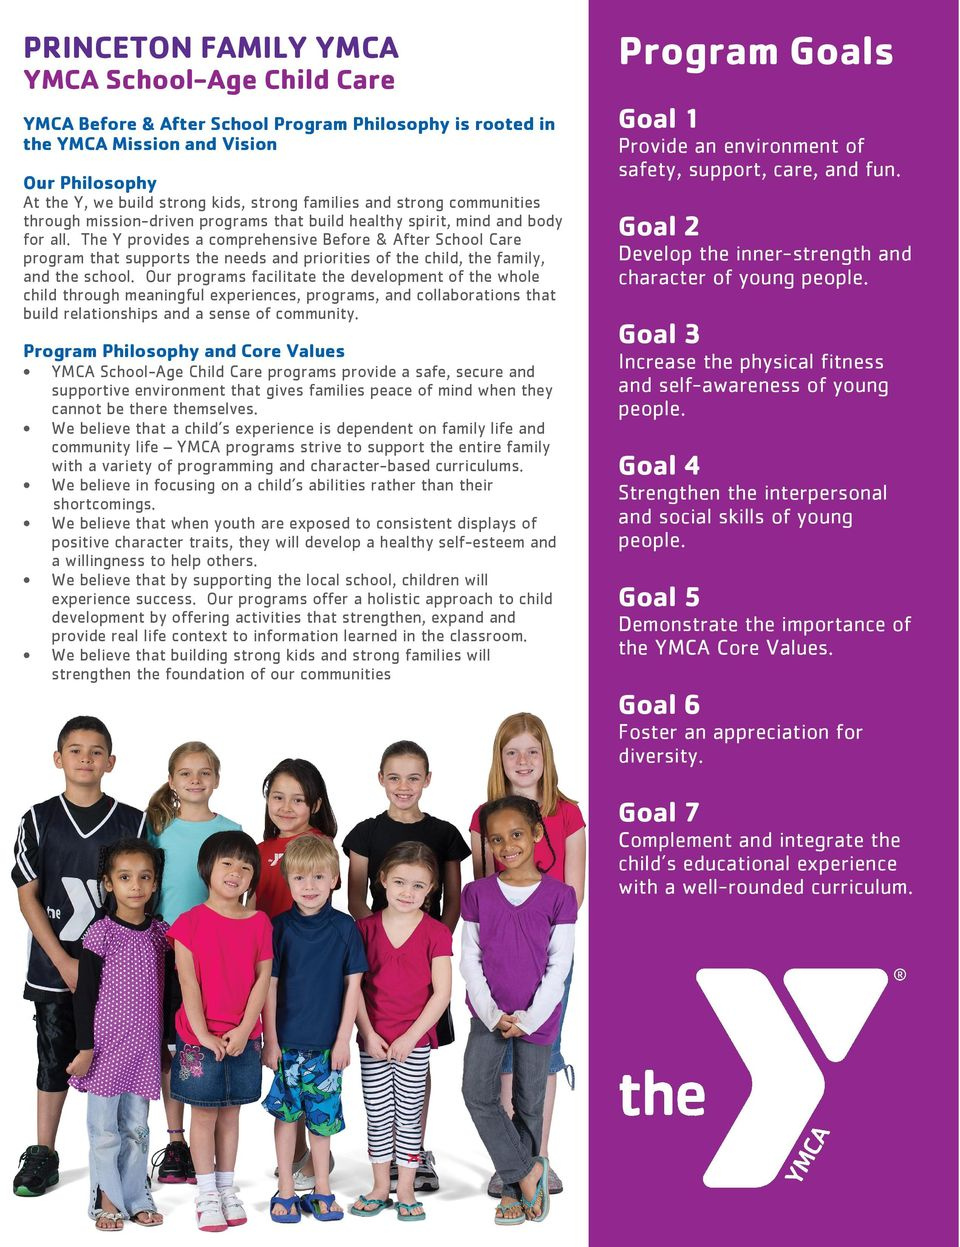 The Y provides a comprehensive Before & After School Care program that supports the needs and priorities of the child, the family, and the school.